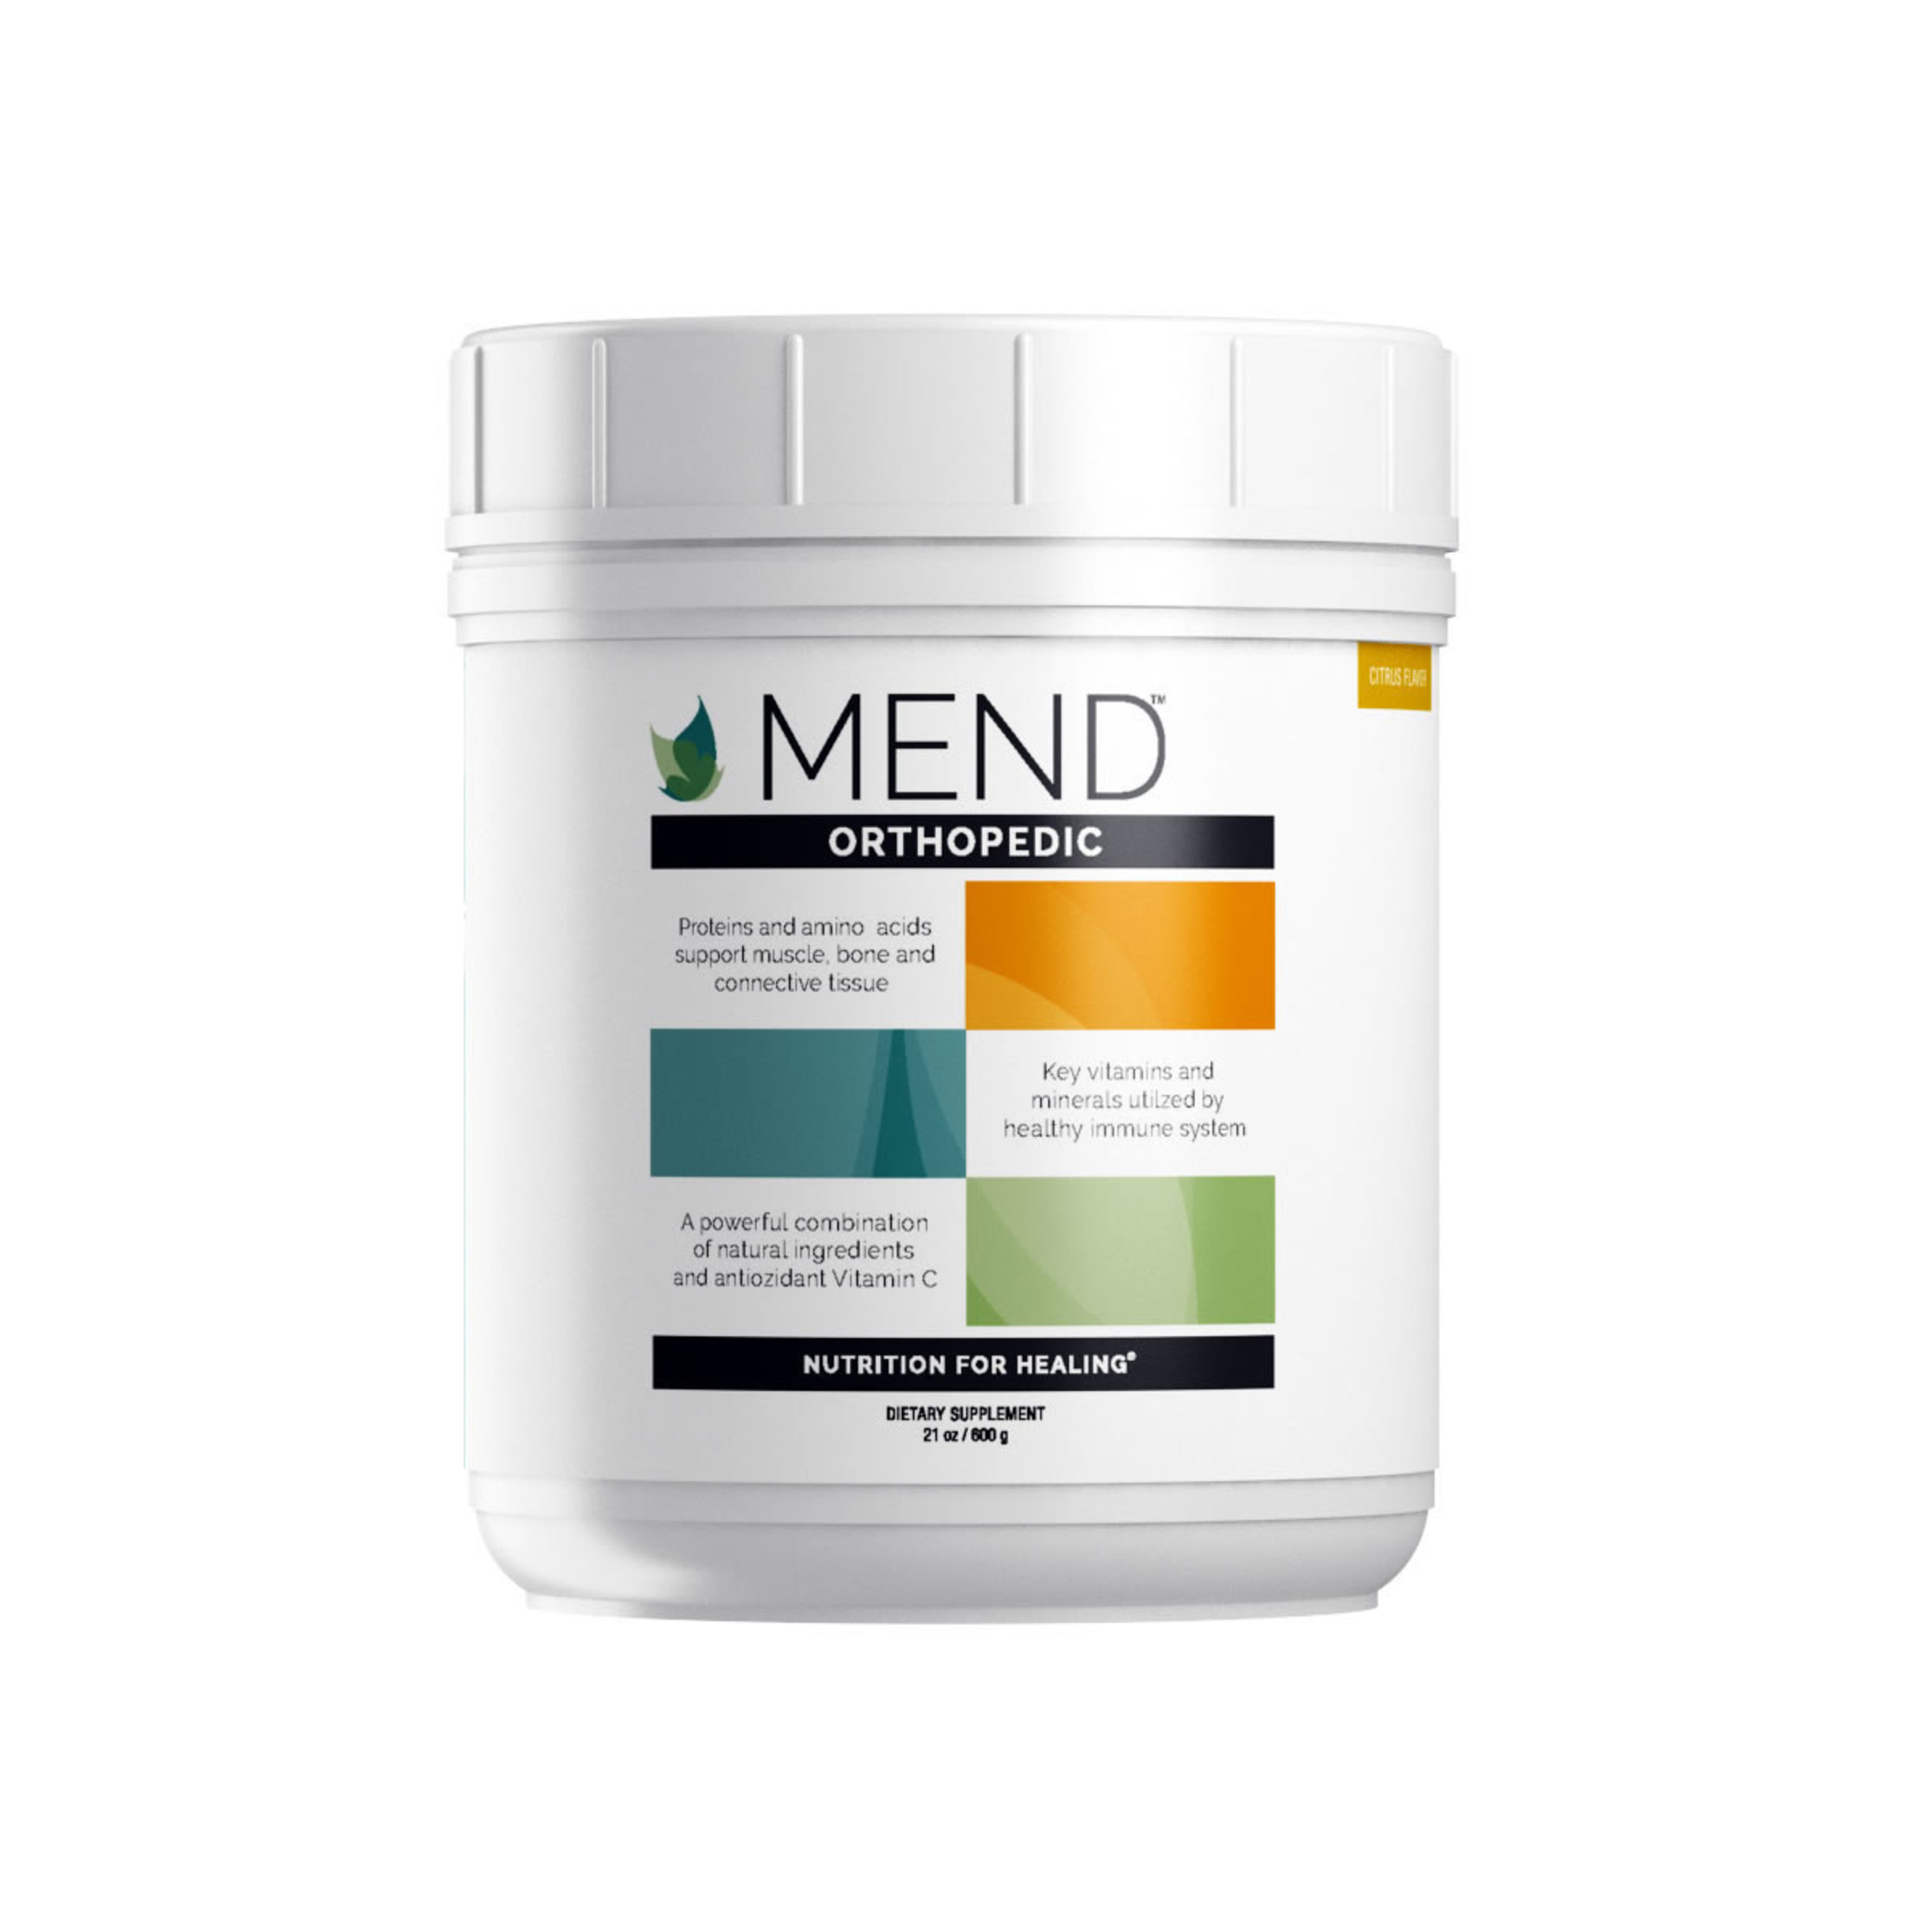 MEND™ Poised to Become the Leading Nutritional Healing